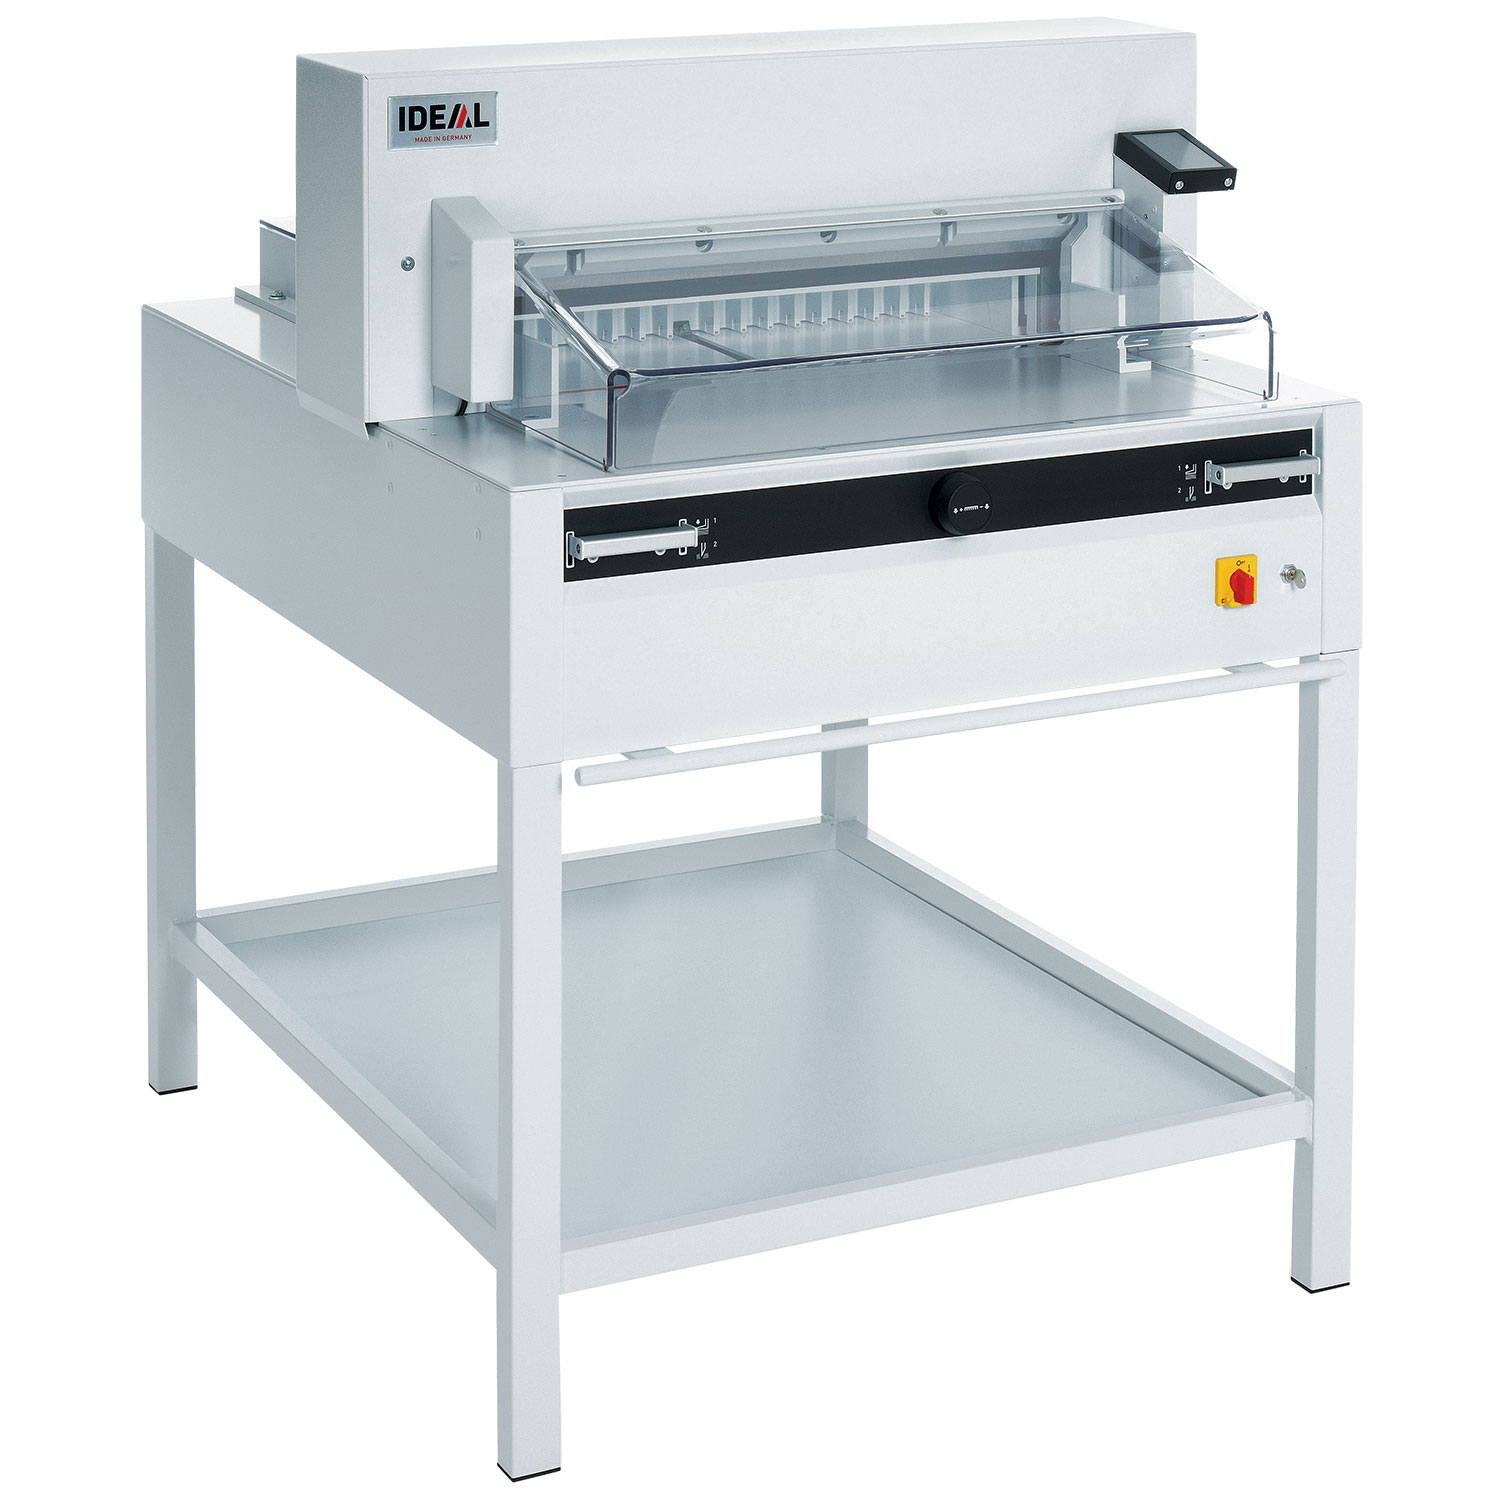 IDEAL 6655 Programmable Electric Guillotine (650mm Cut)